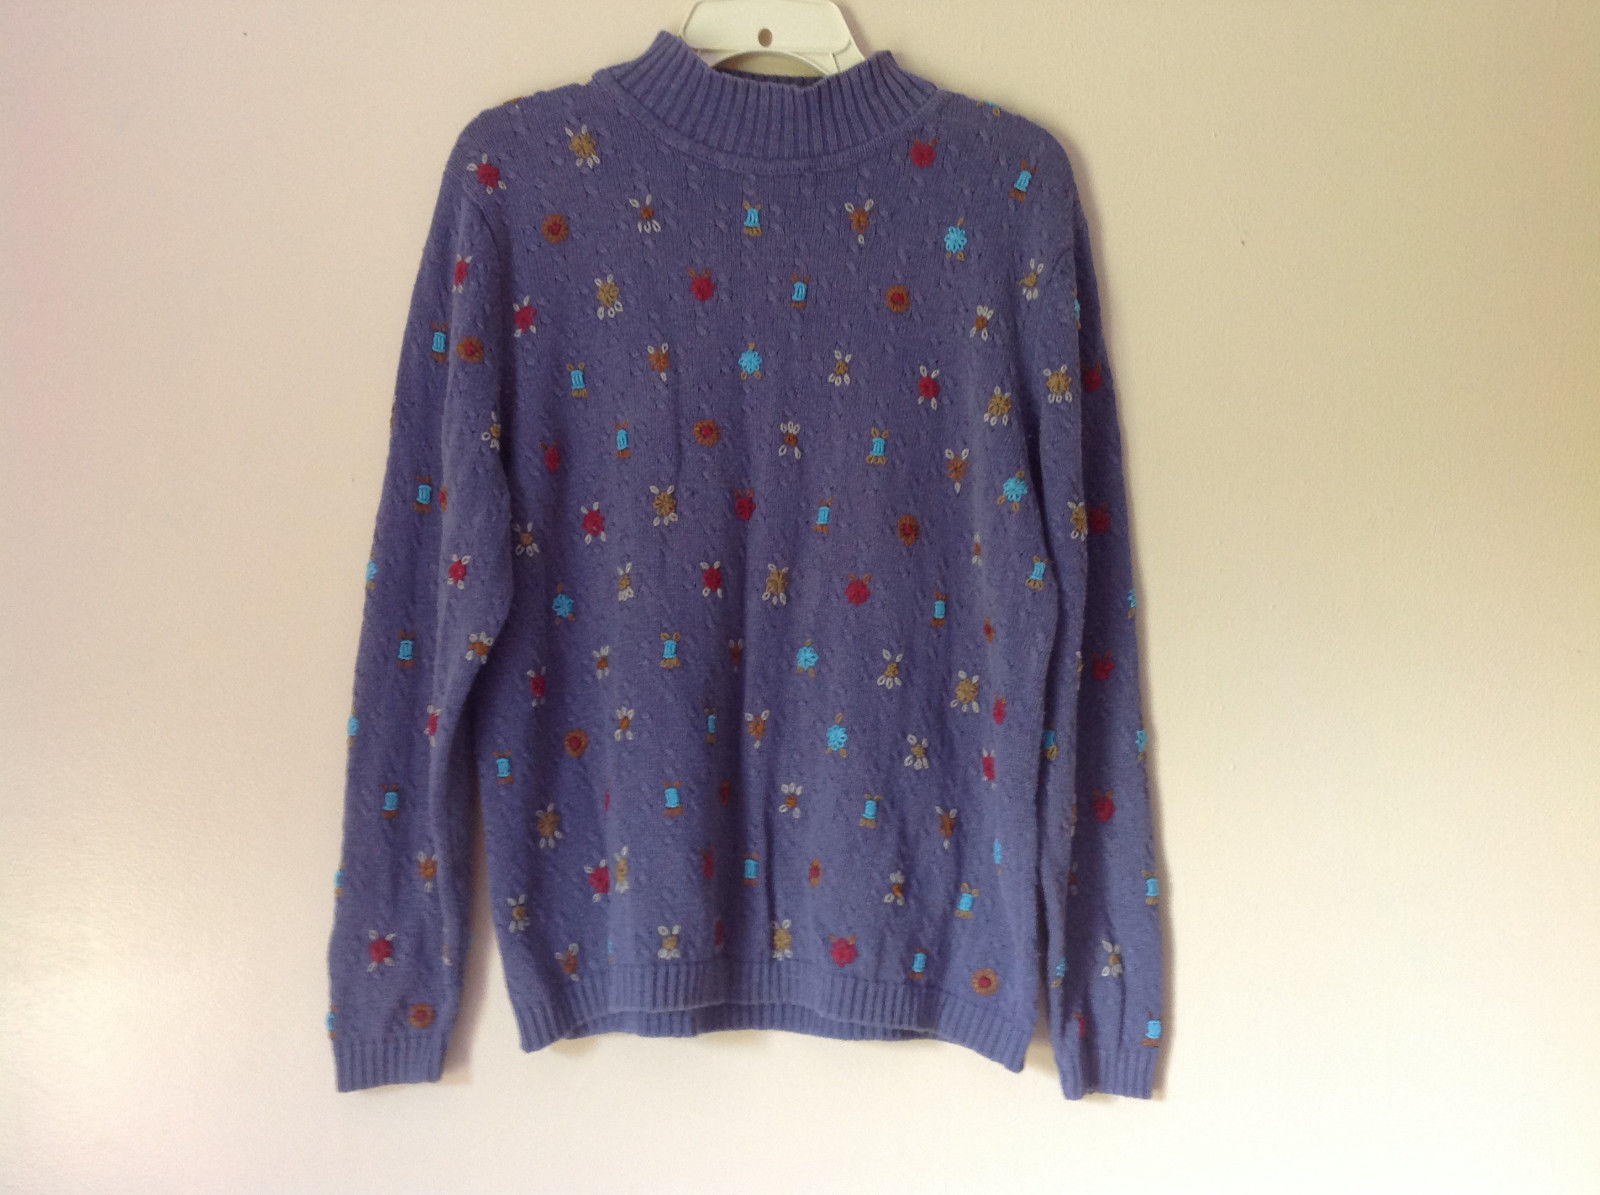 Very Cute Stonebridge Purple Turtleneck Sweater with Knitted Flowers Size XL